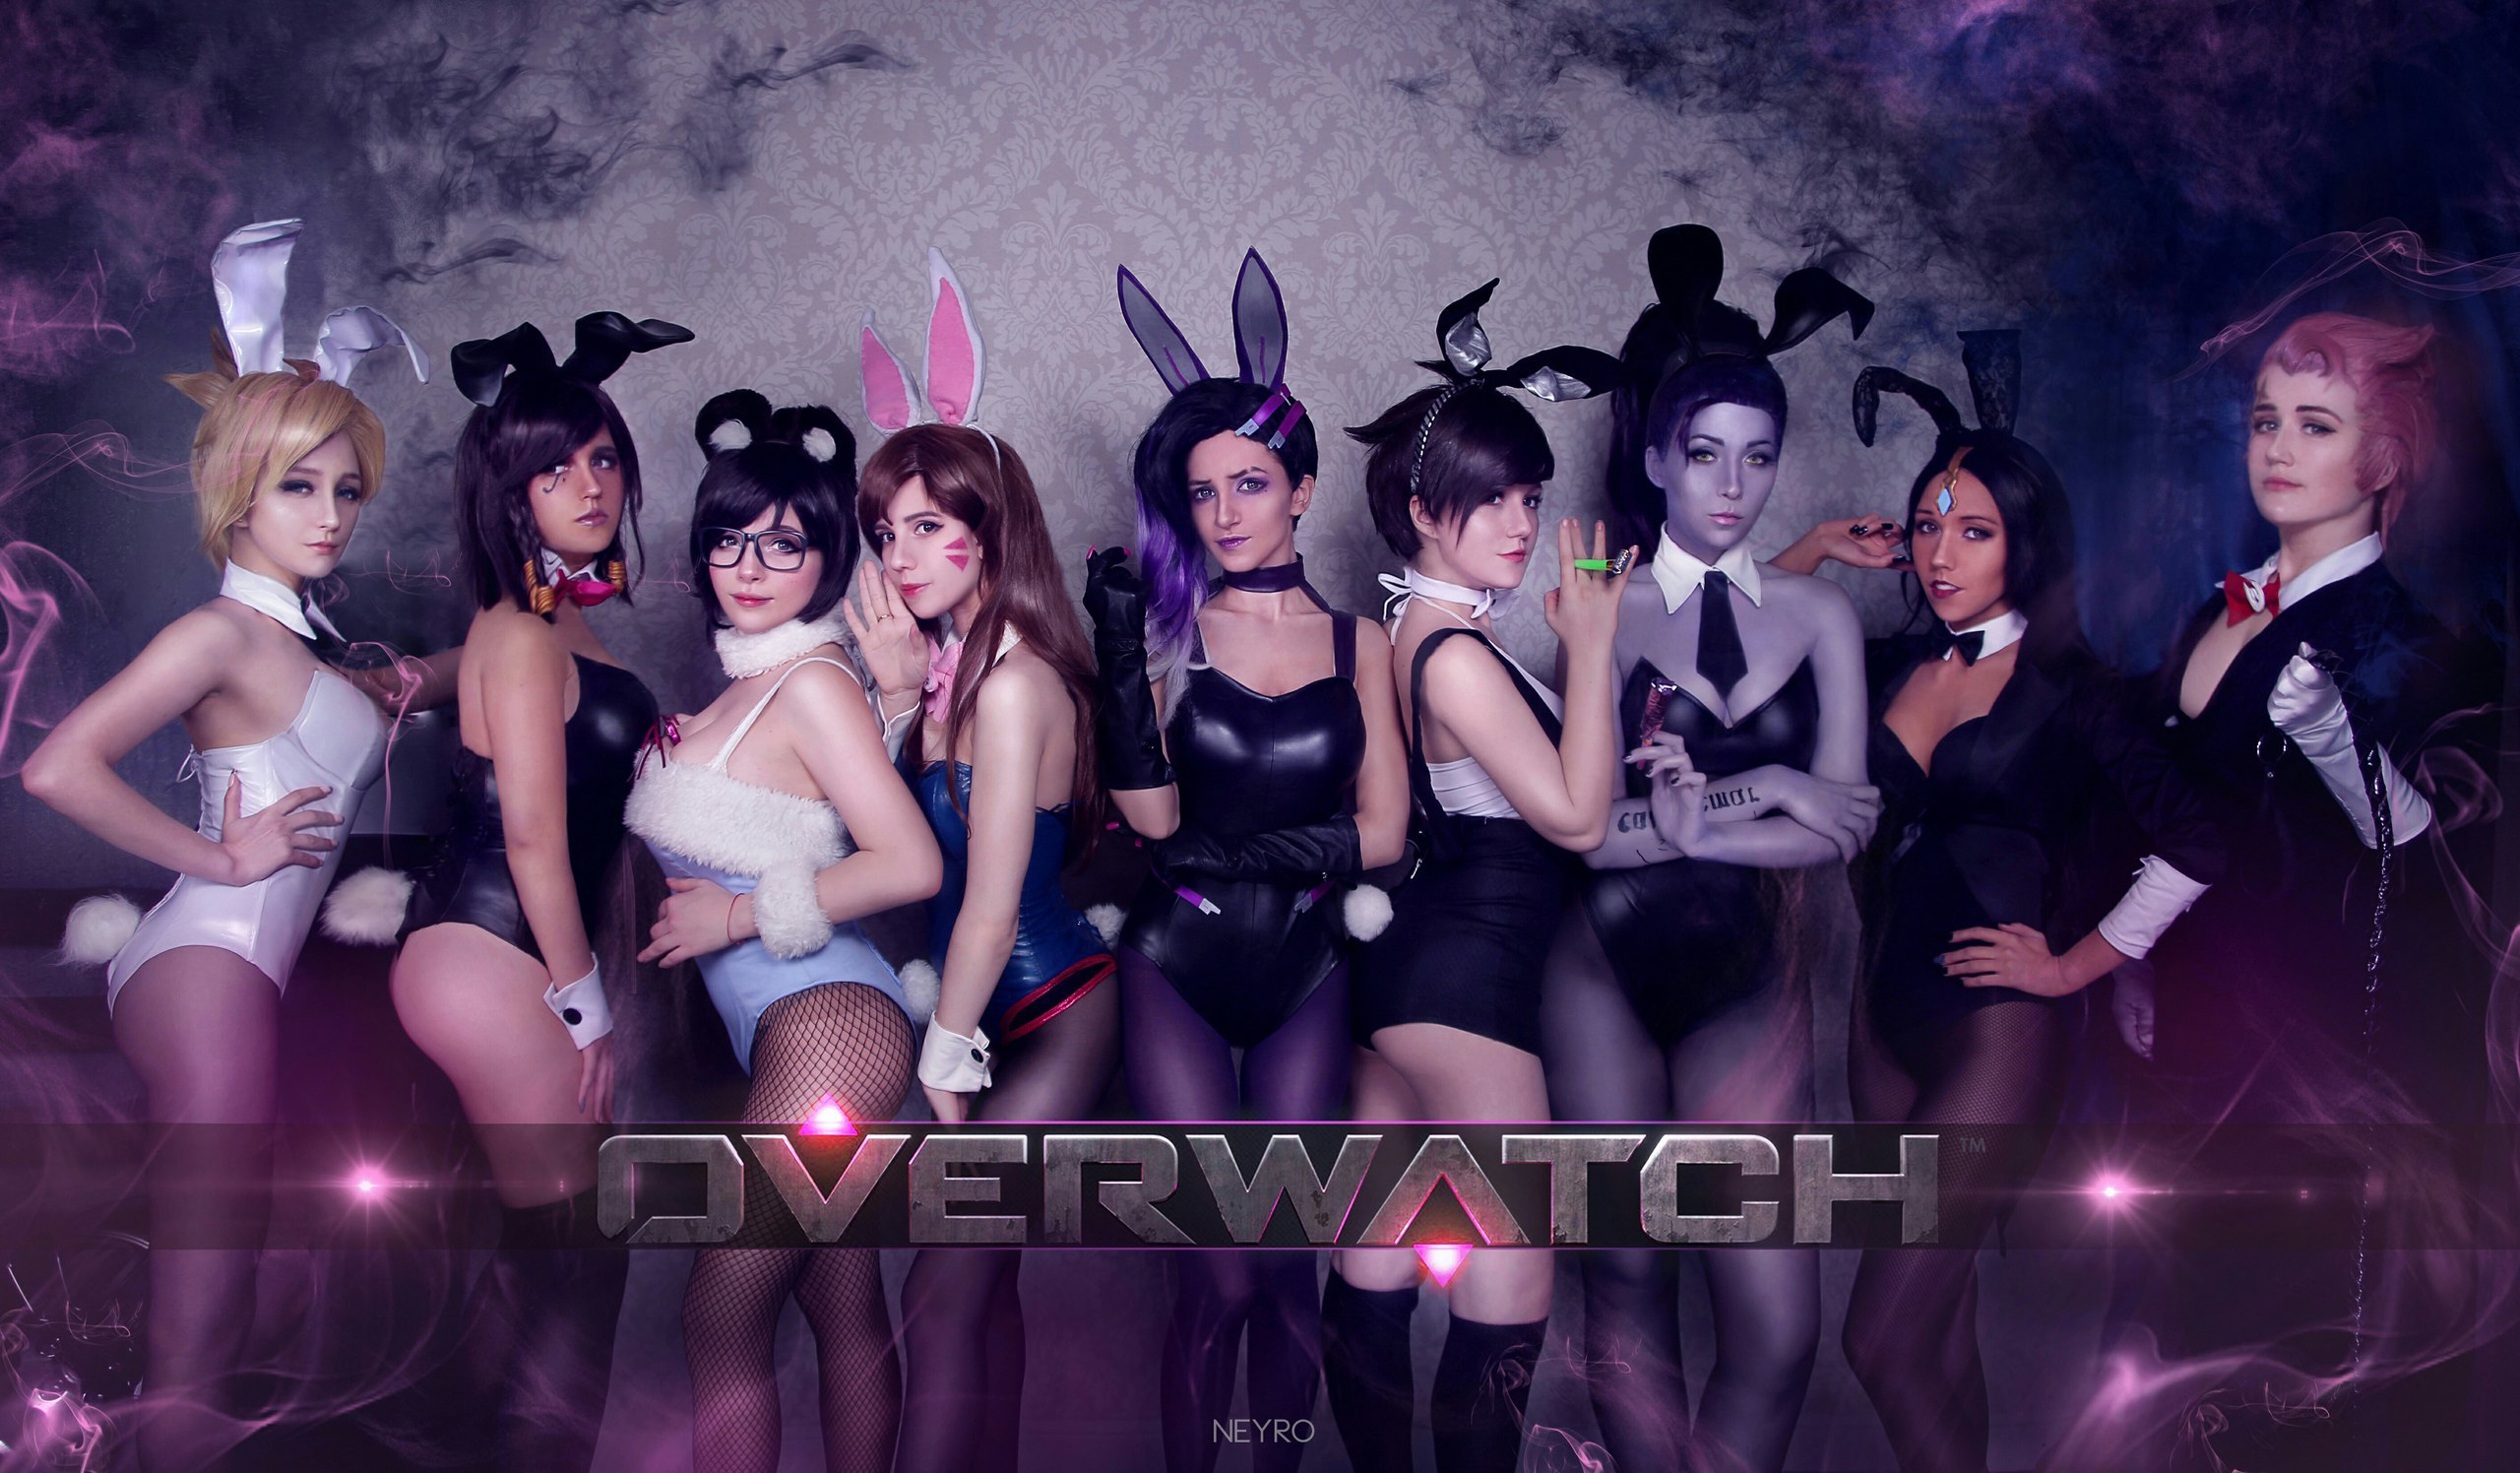 People 2560x1496 Overwatch Anniversary Combat Medic Ziegler Witch Mercy Mercy Pharah (Overwatch) Mei (Overwatch) D.Va (Overwatch) Sombra (Overwatch) Tracer (Overwatch) Widowmaker (Overwatch) Symmetra (Overwatch) Zarya (Overwatch) Mercy (Overwatch) Overwatch black pantyhose bunny suit tights cosplay